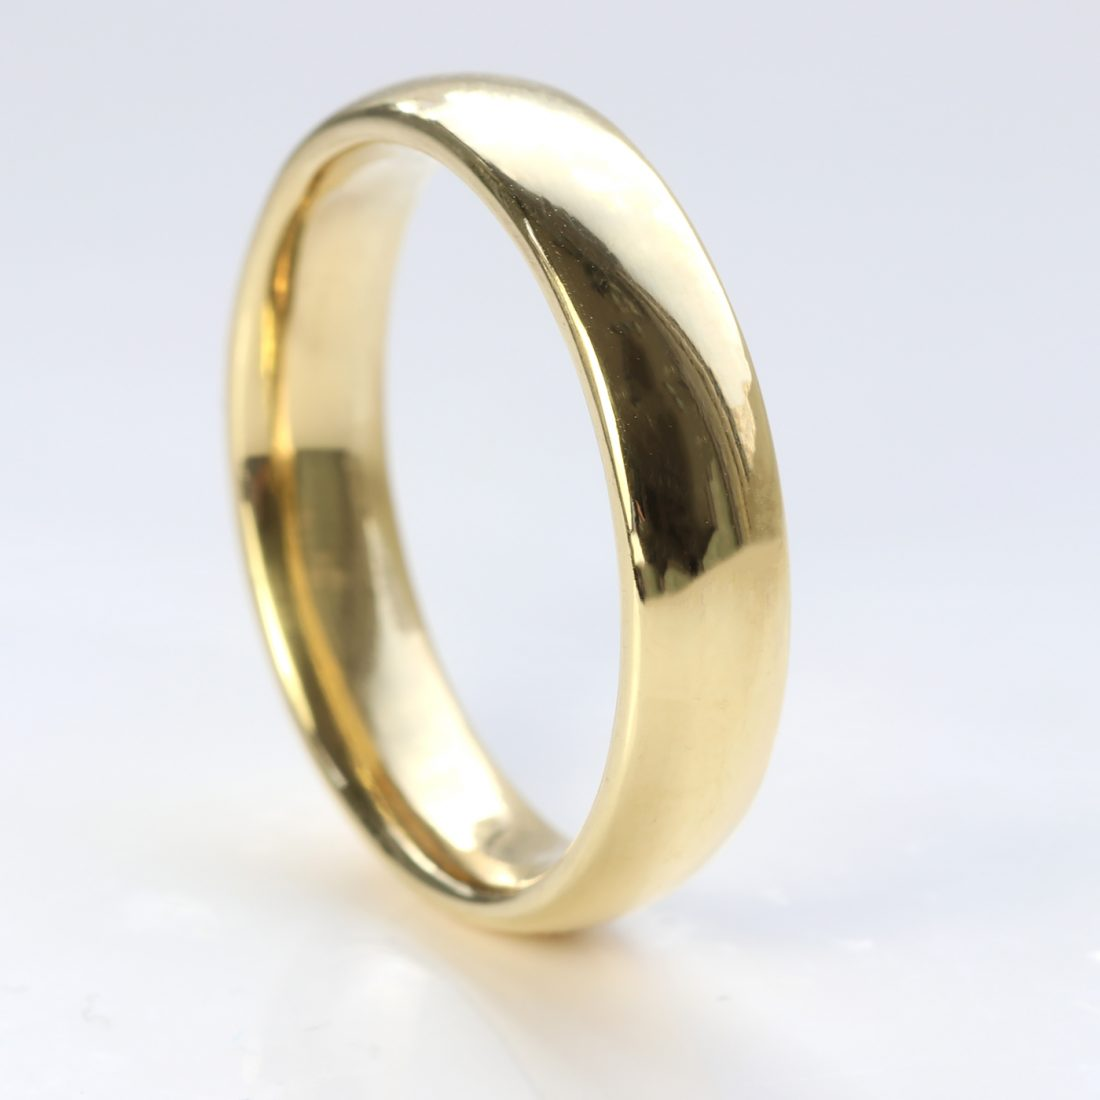 5mm x 2mm comfort fit wedding ring yellow gold